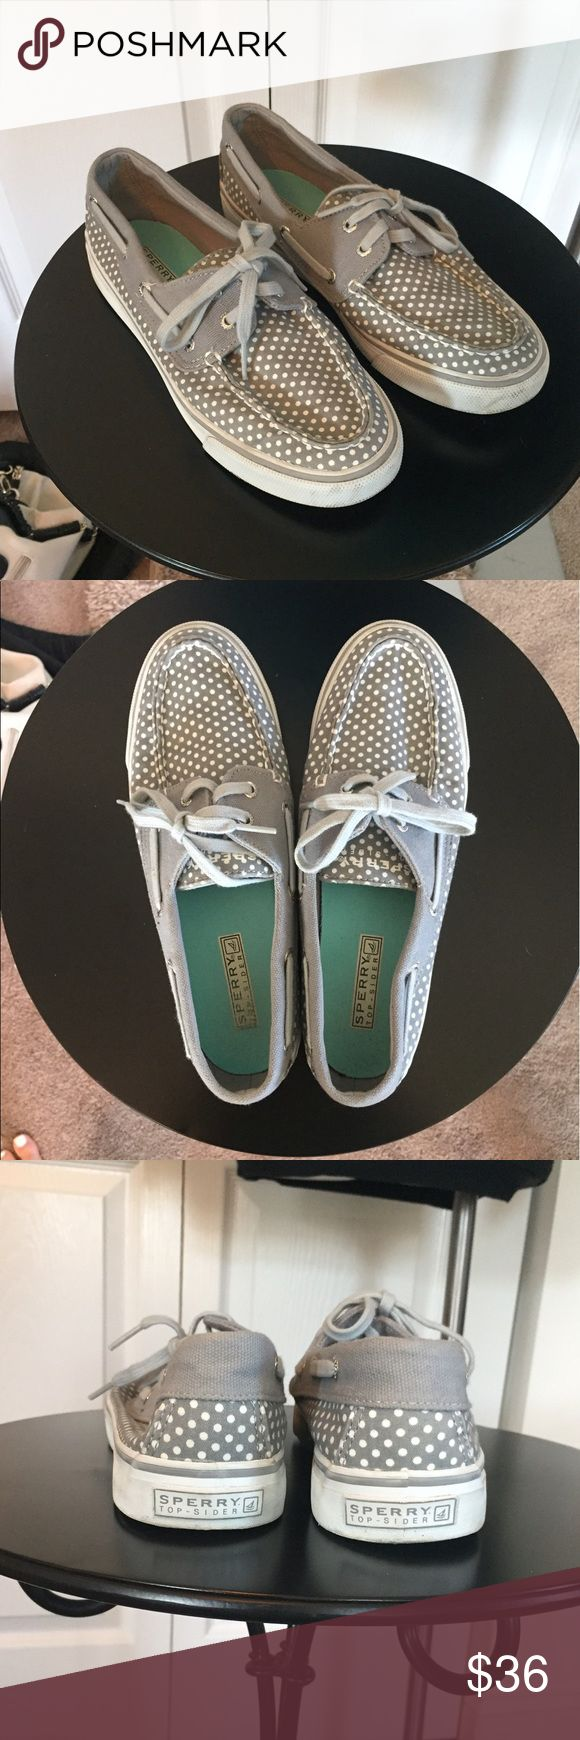 SPERRY Top Siders size 7.5 Gray with white dots Sperry Top-Sider.  Women's size 7.5.  Very good condition, please see pics. Sperry Top-Sider Shoes